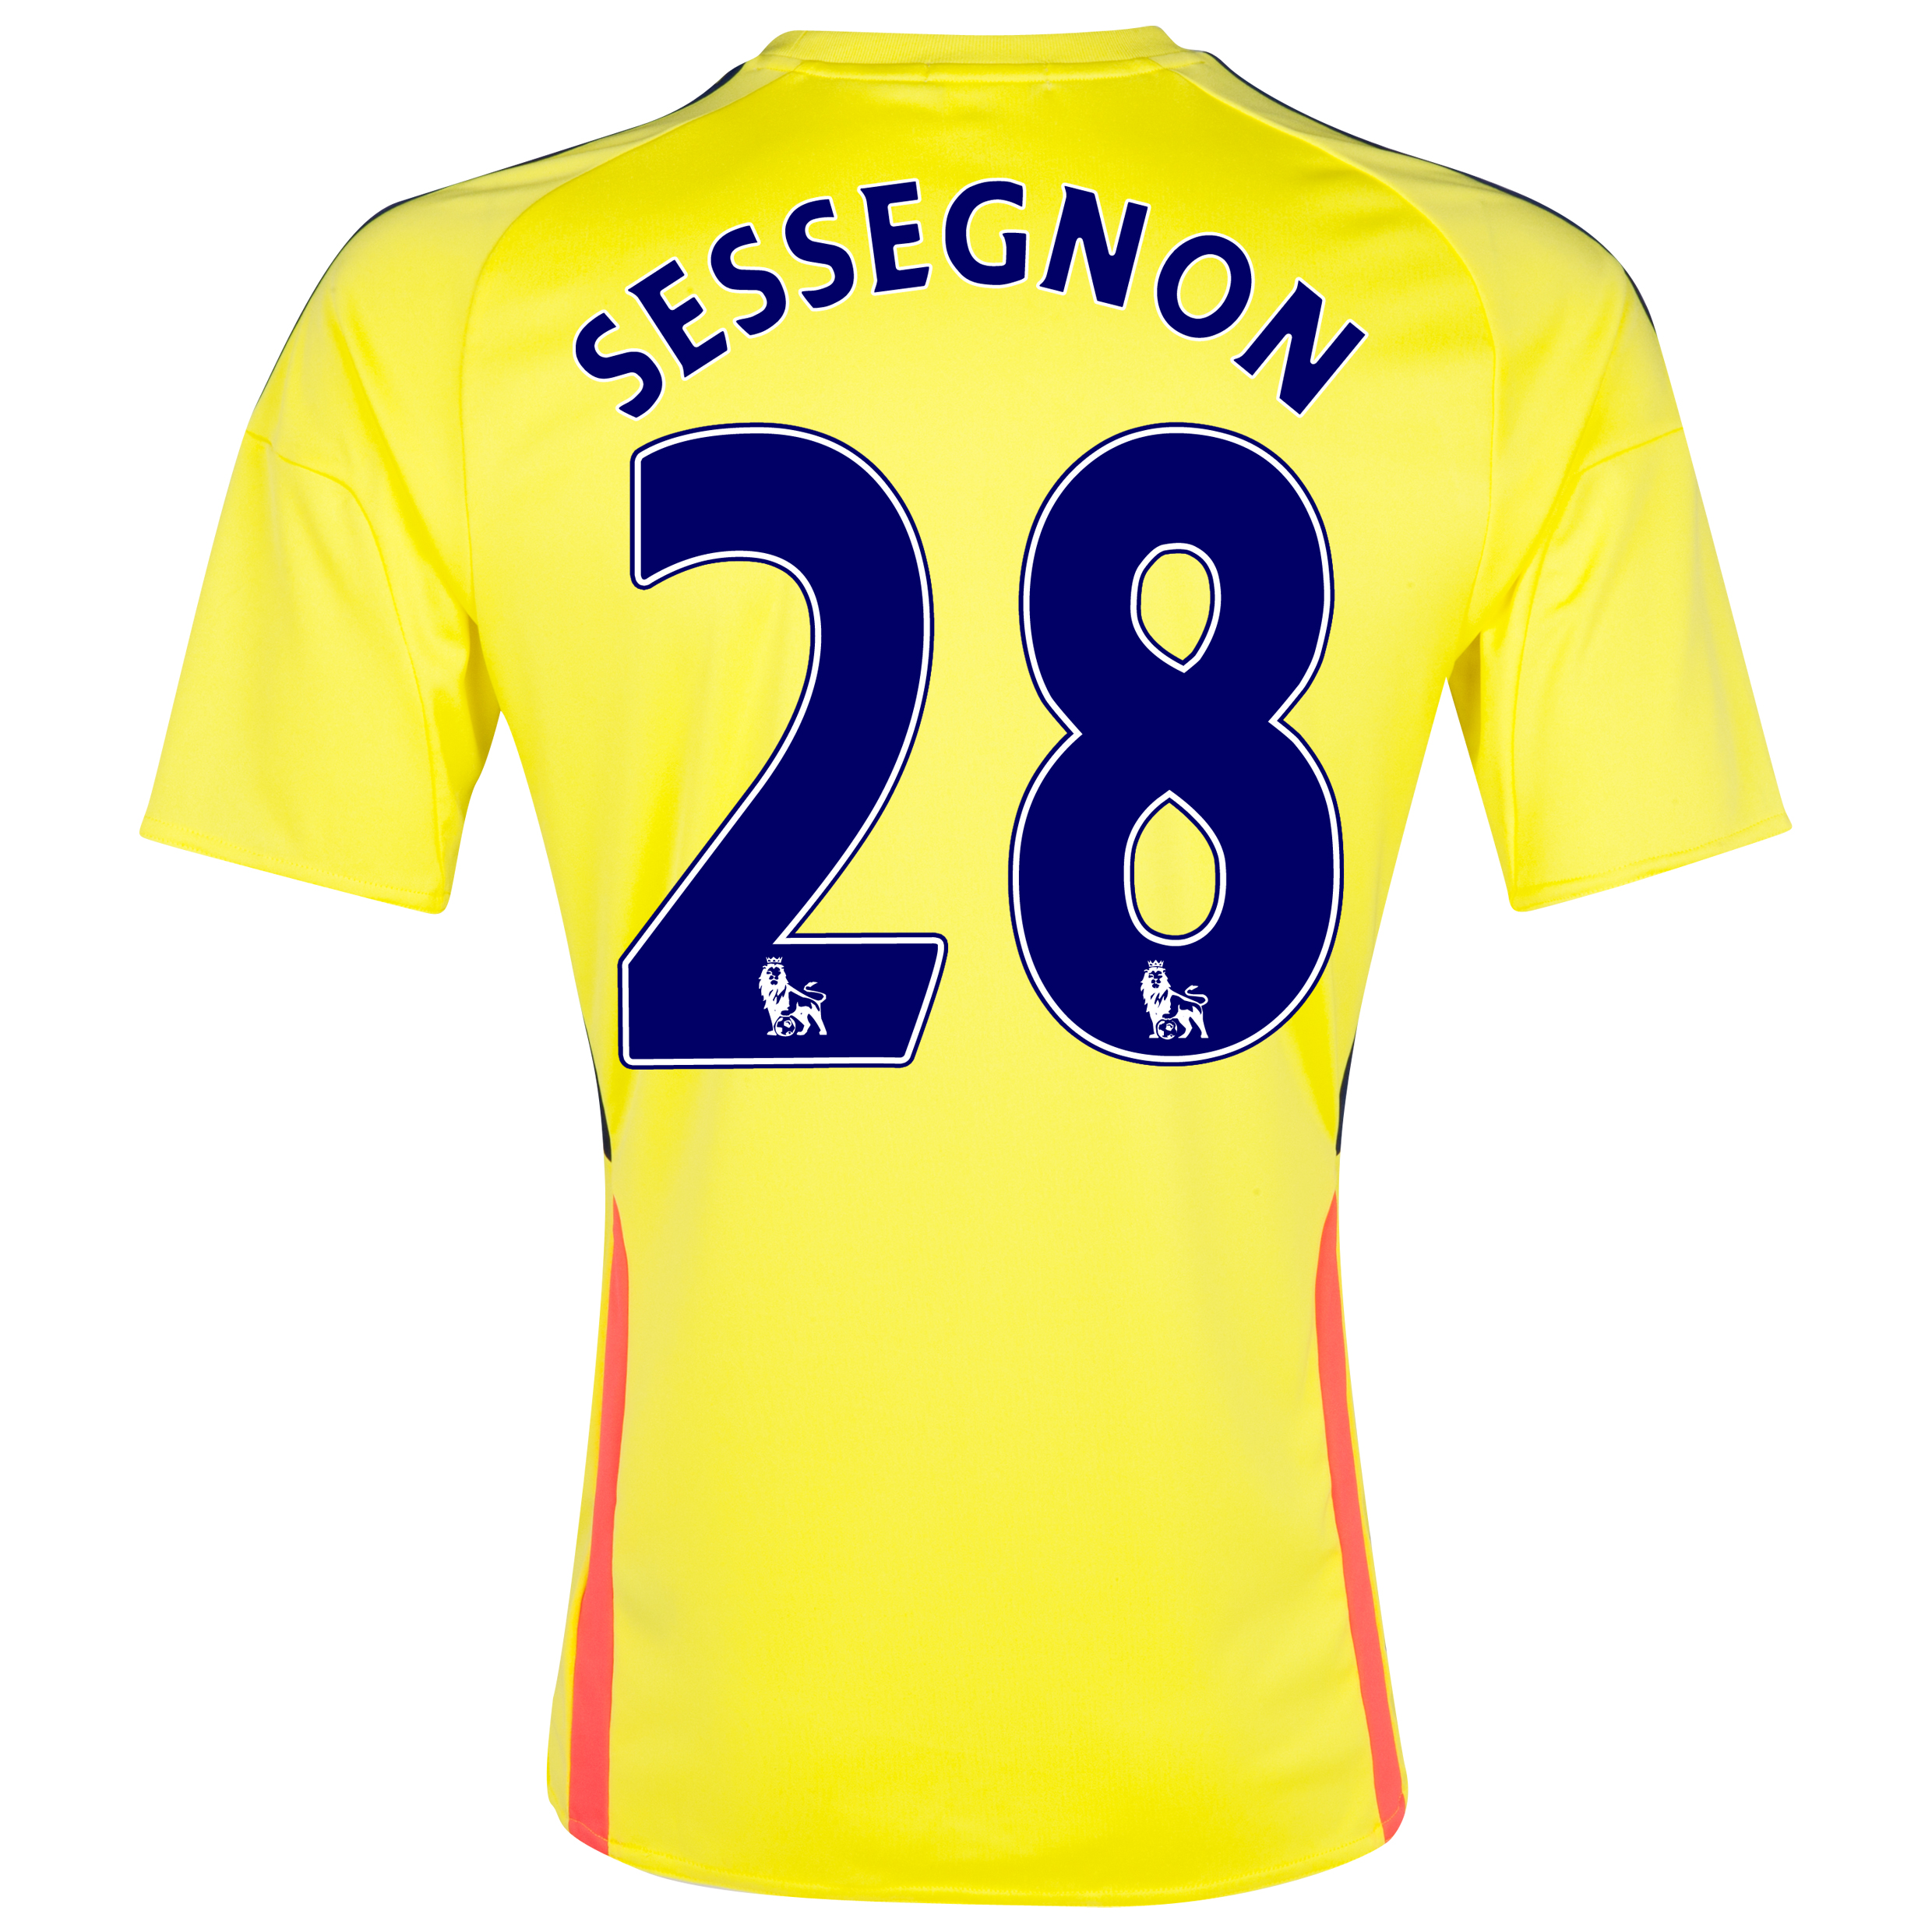 Sunderland Away Shirt 2013/14 with Sessegnon 28 printing